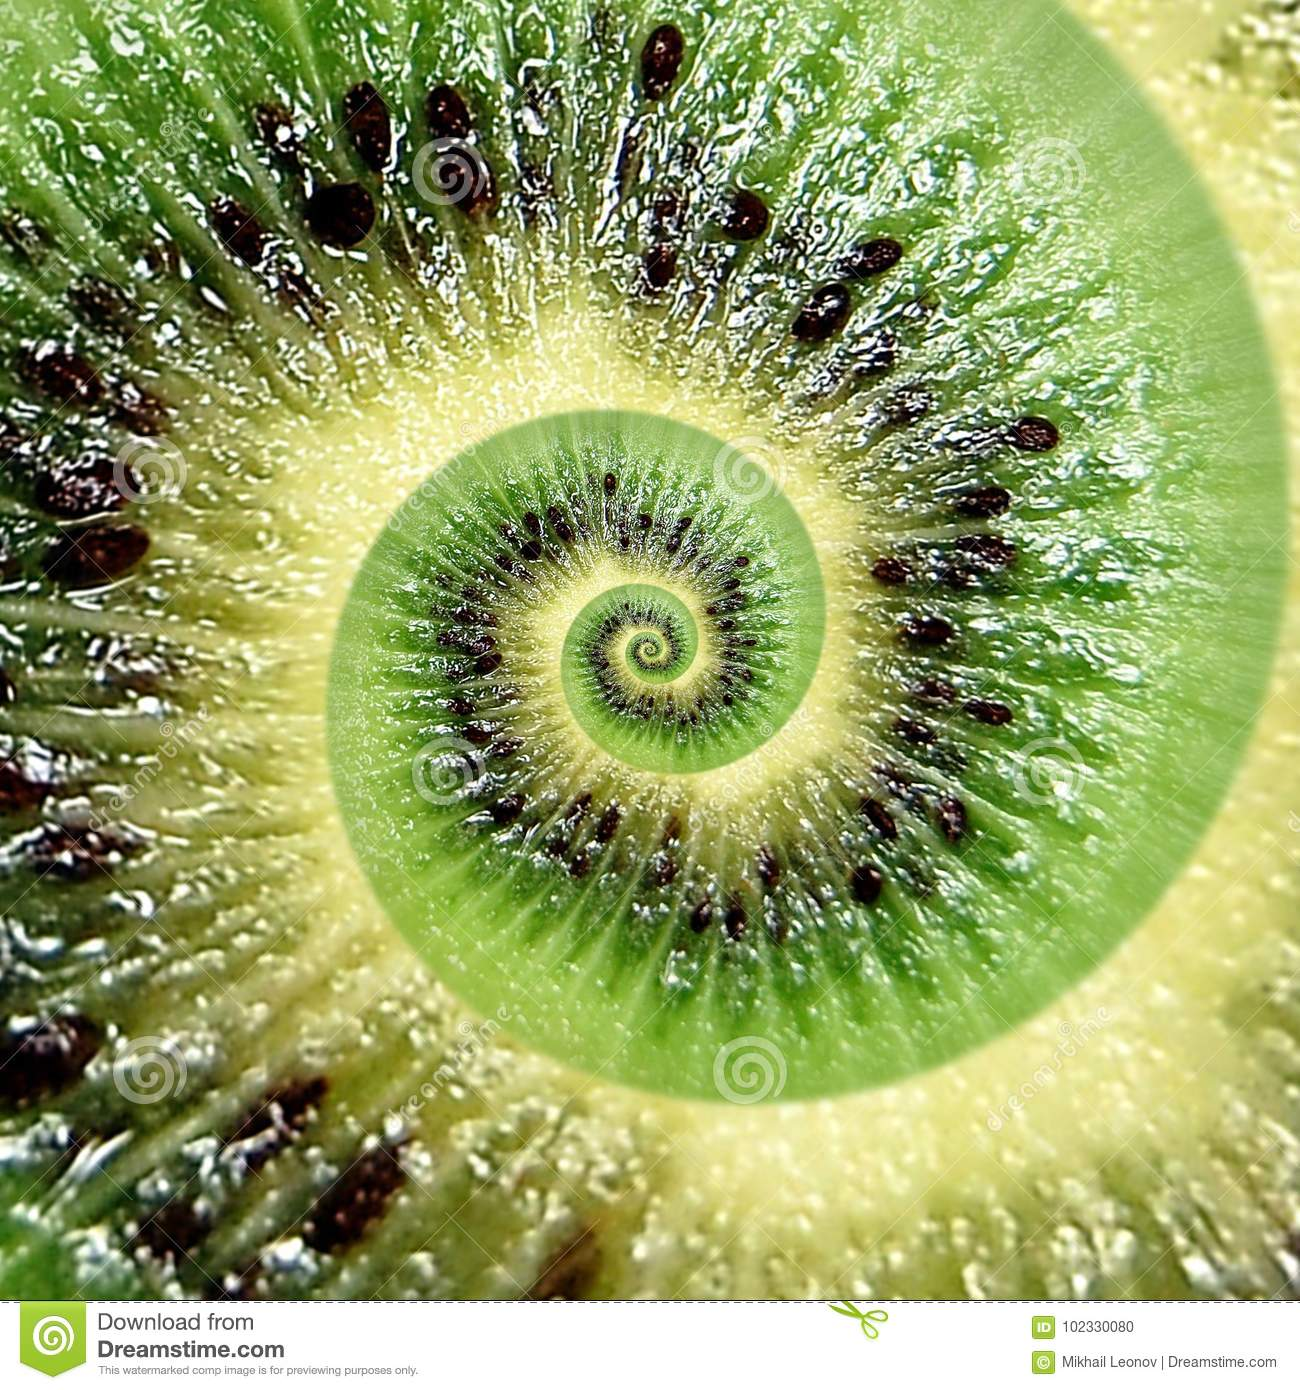 Kiwi abstract texture fractal spiral. Kiwi background. Abstract green black fruit fractal effect. Food incredible background. Funn